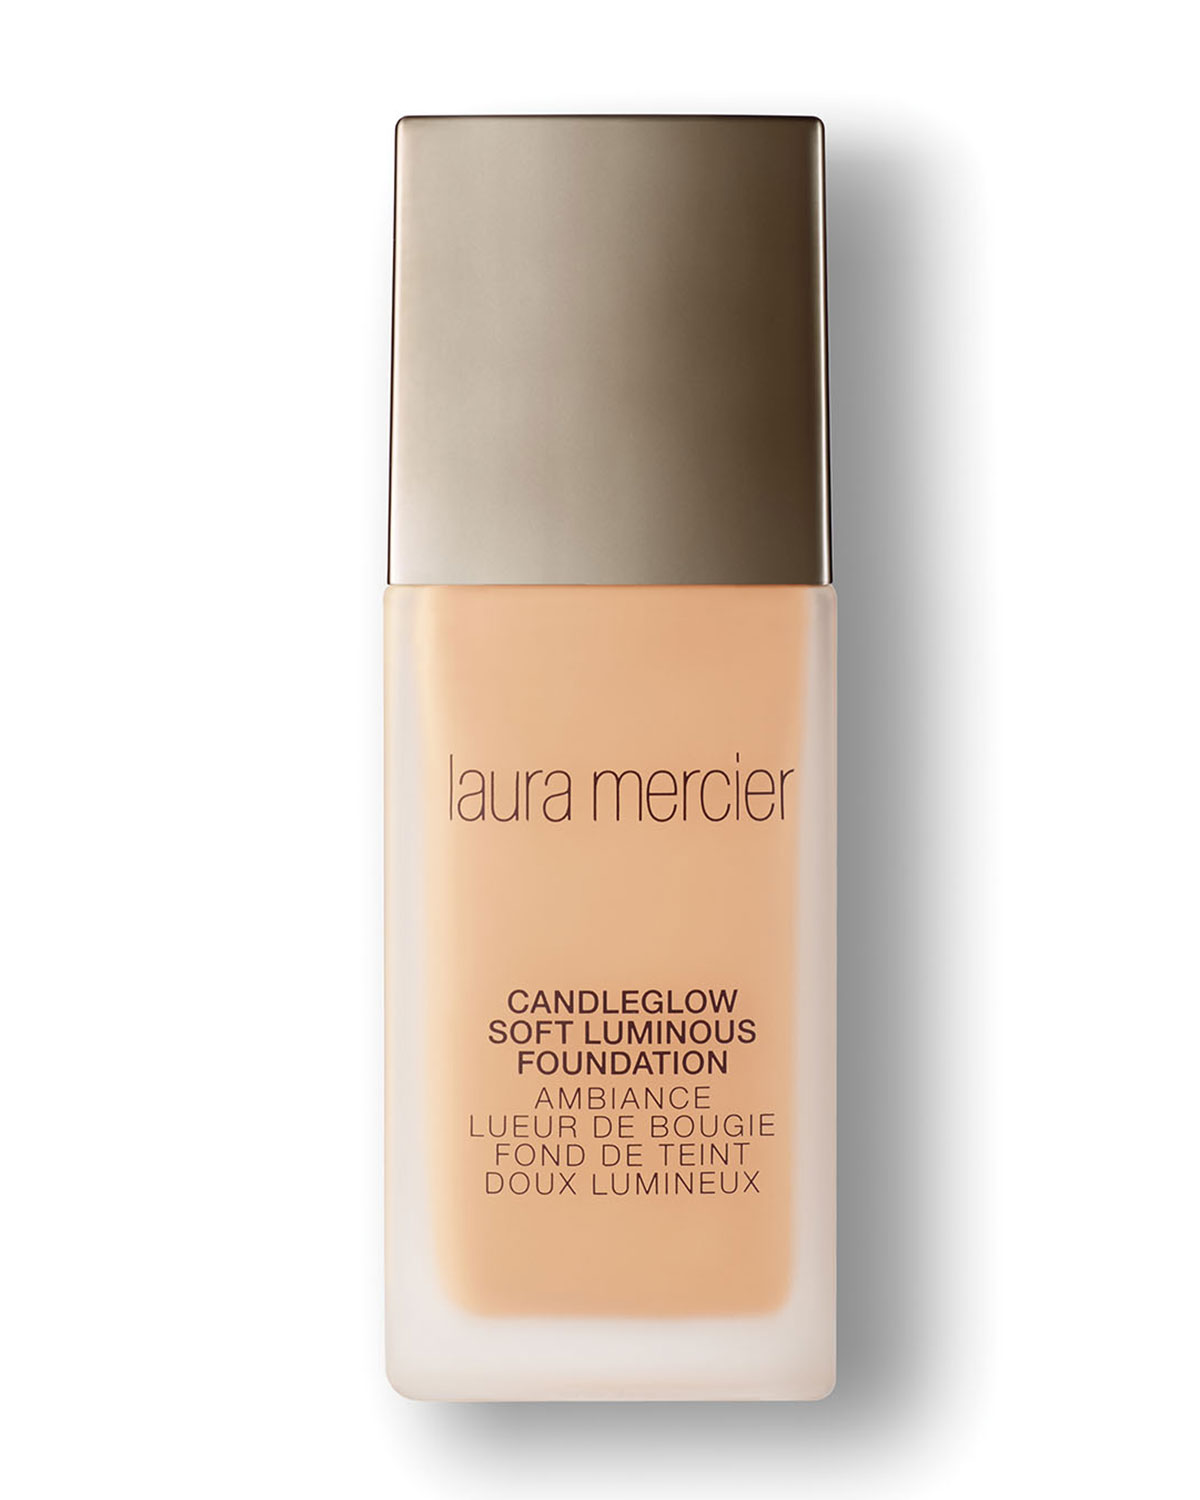 Candleglow Soft Luminous Foundation, 1.0 oz, Praline - Laura Mercier